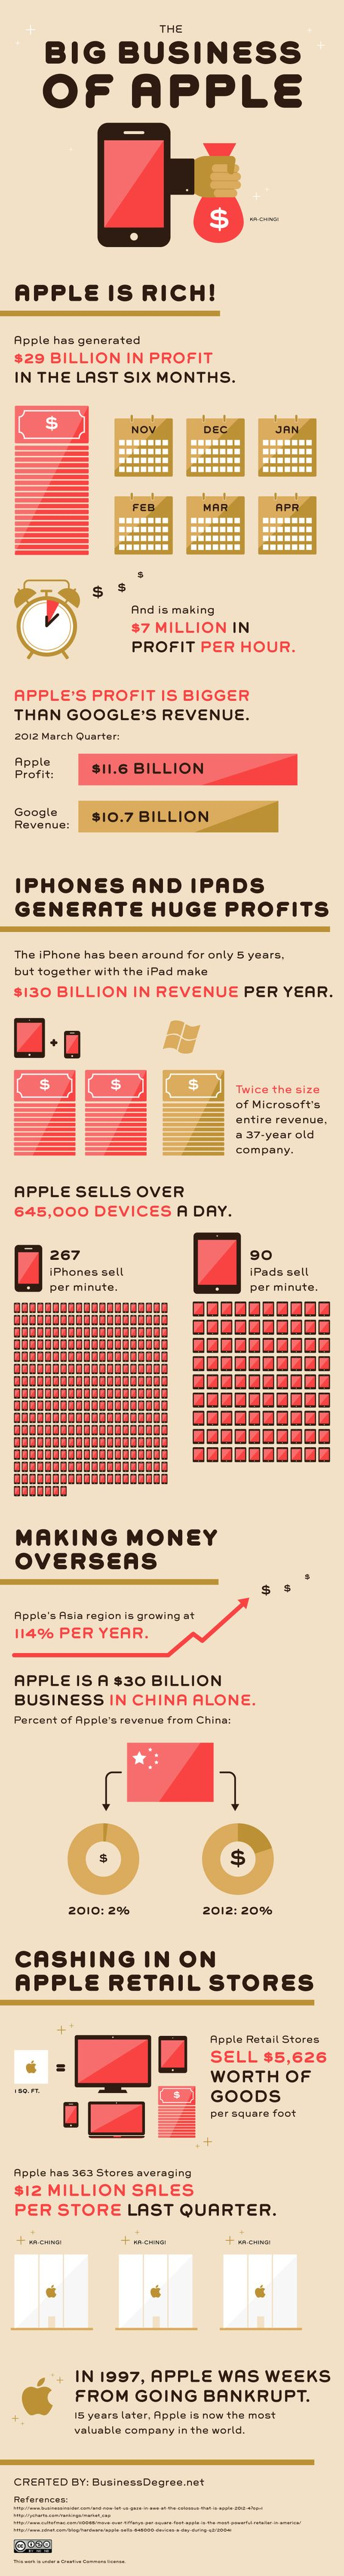 """""""Apple: From Bankruptcy to Dominance in 15 Years"""" -or- """"Hope For Entrepreneurs in Despair"""""""